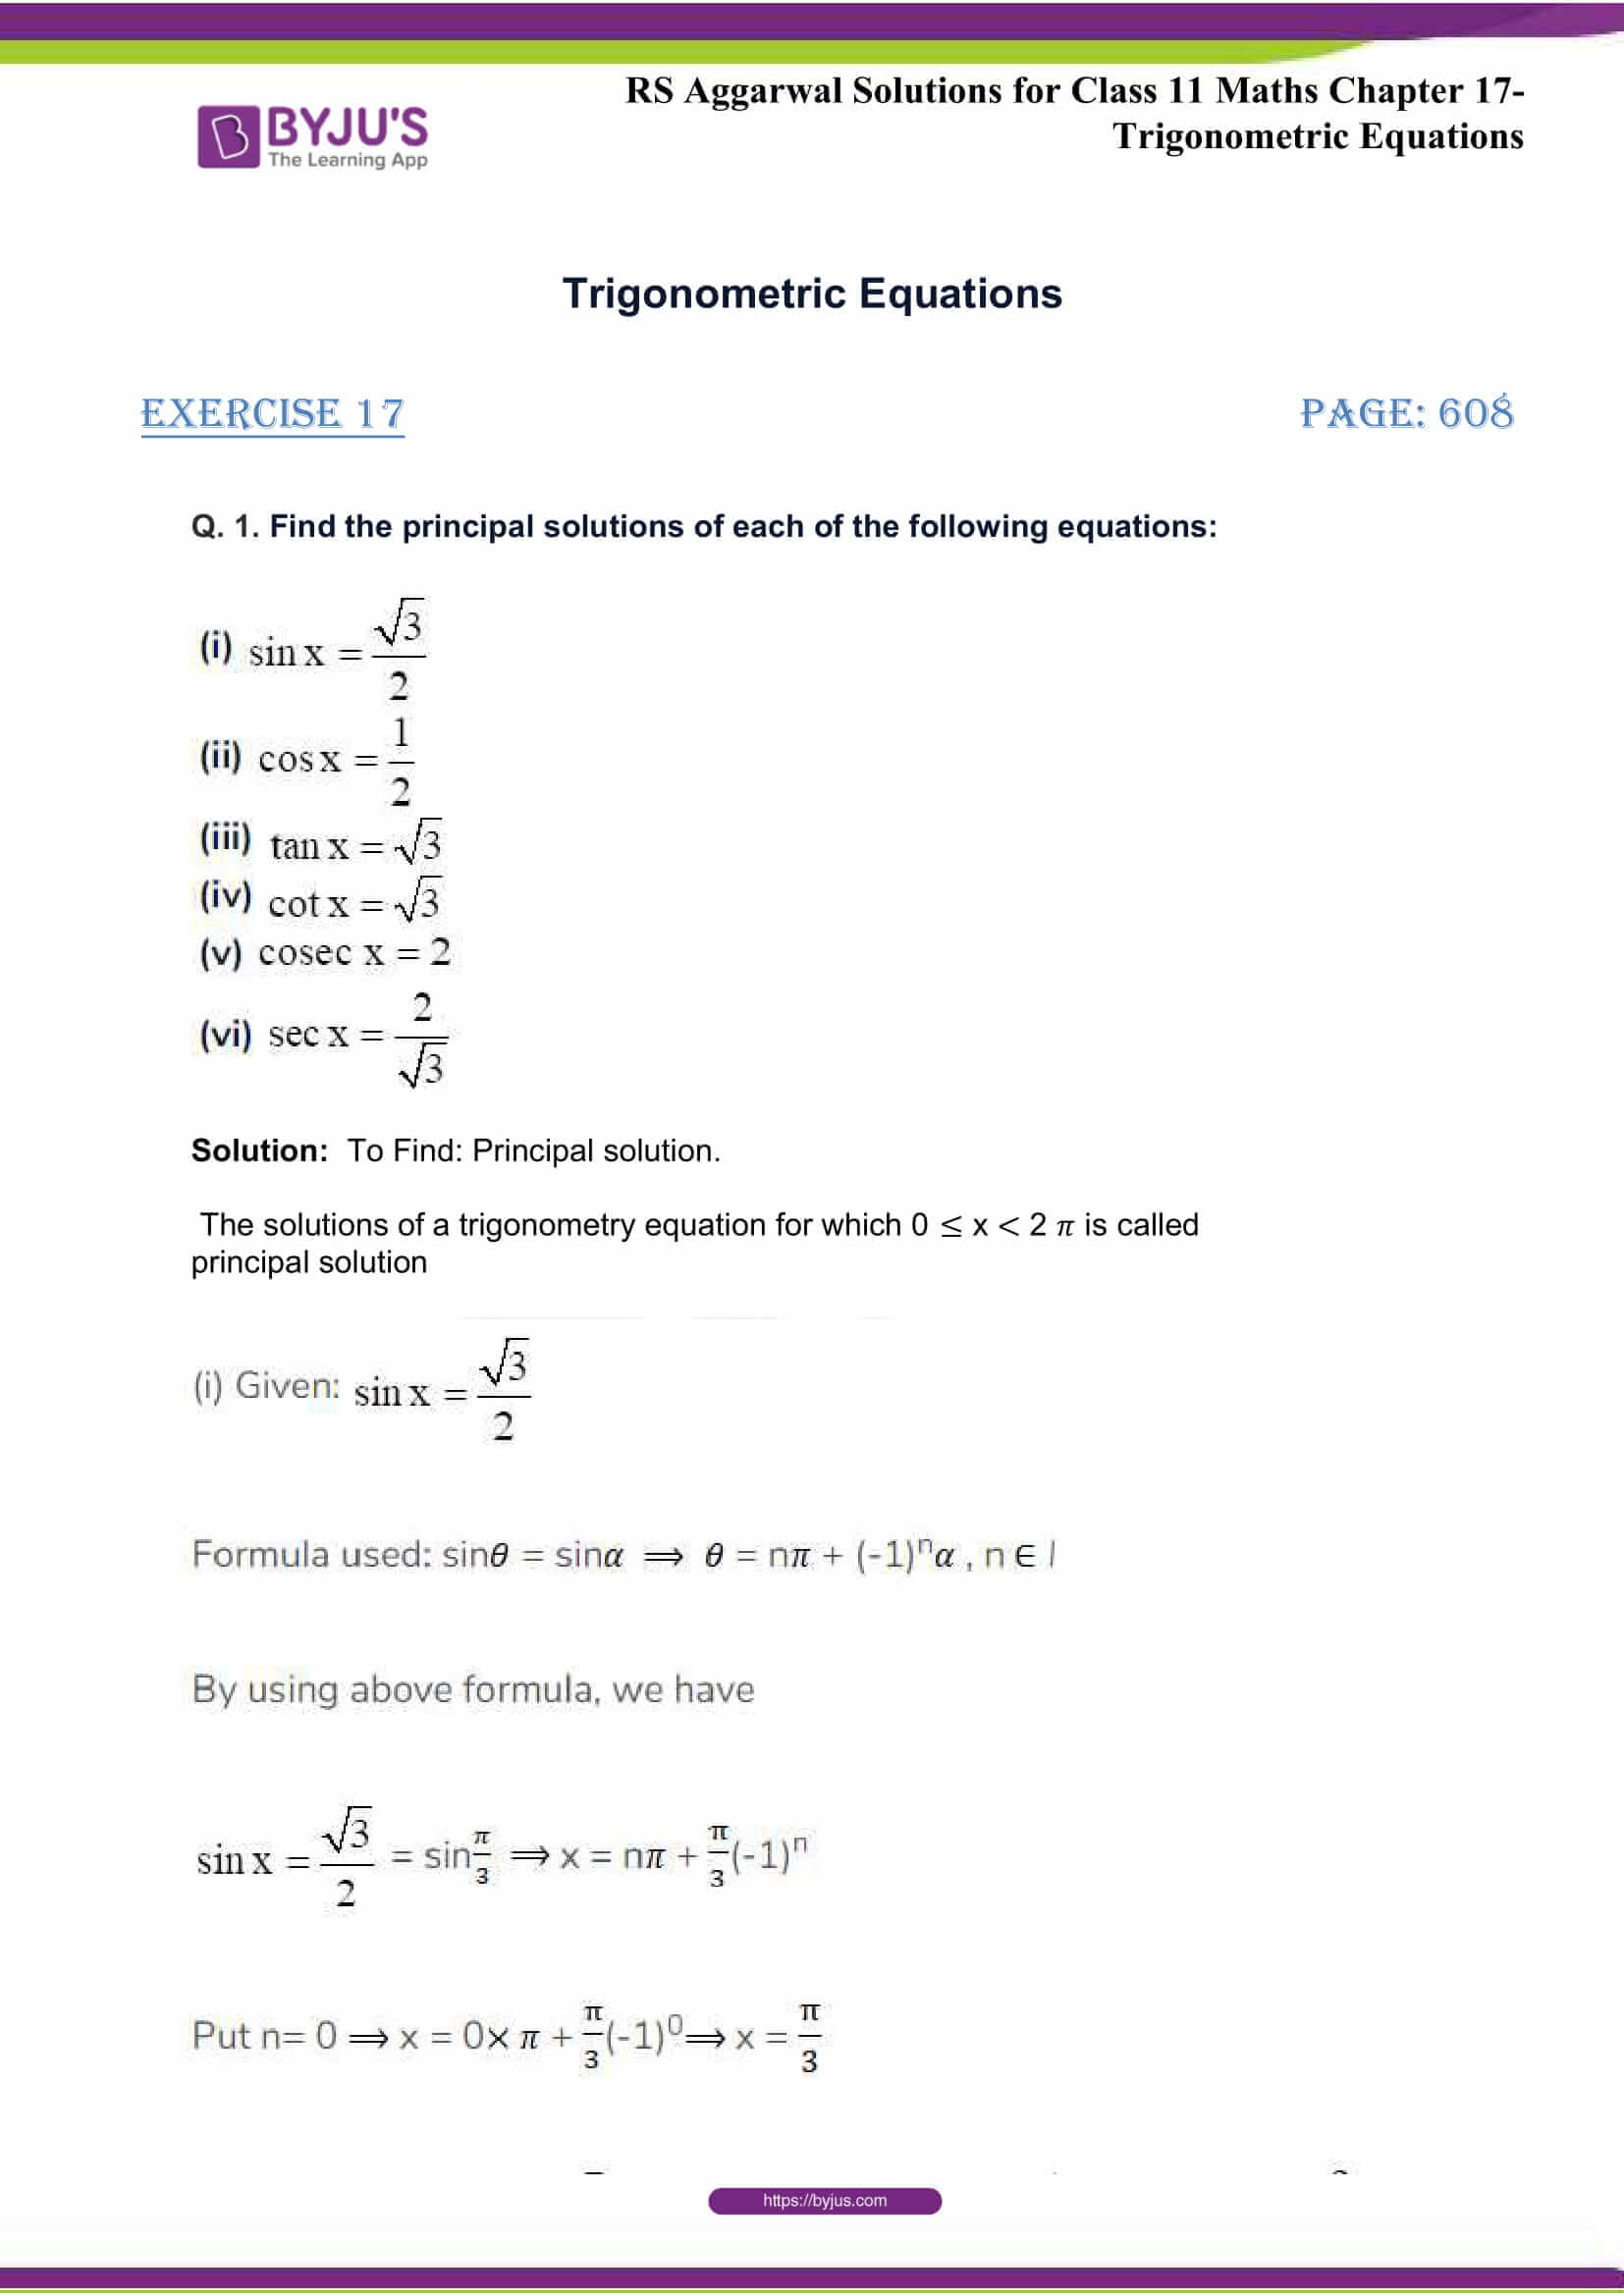 rsaggarwal solutions class 11 maths chapter 17 01